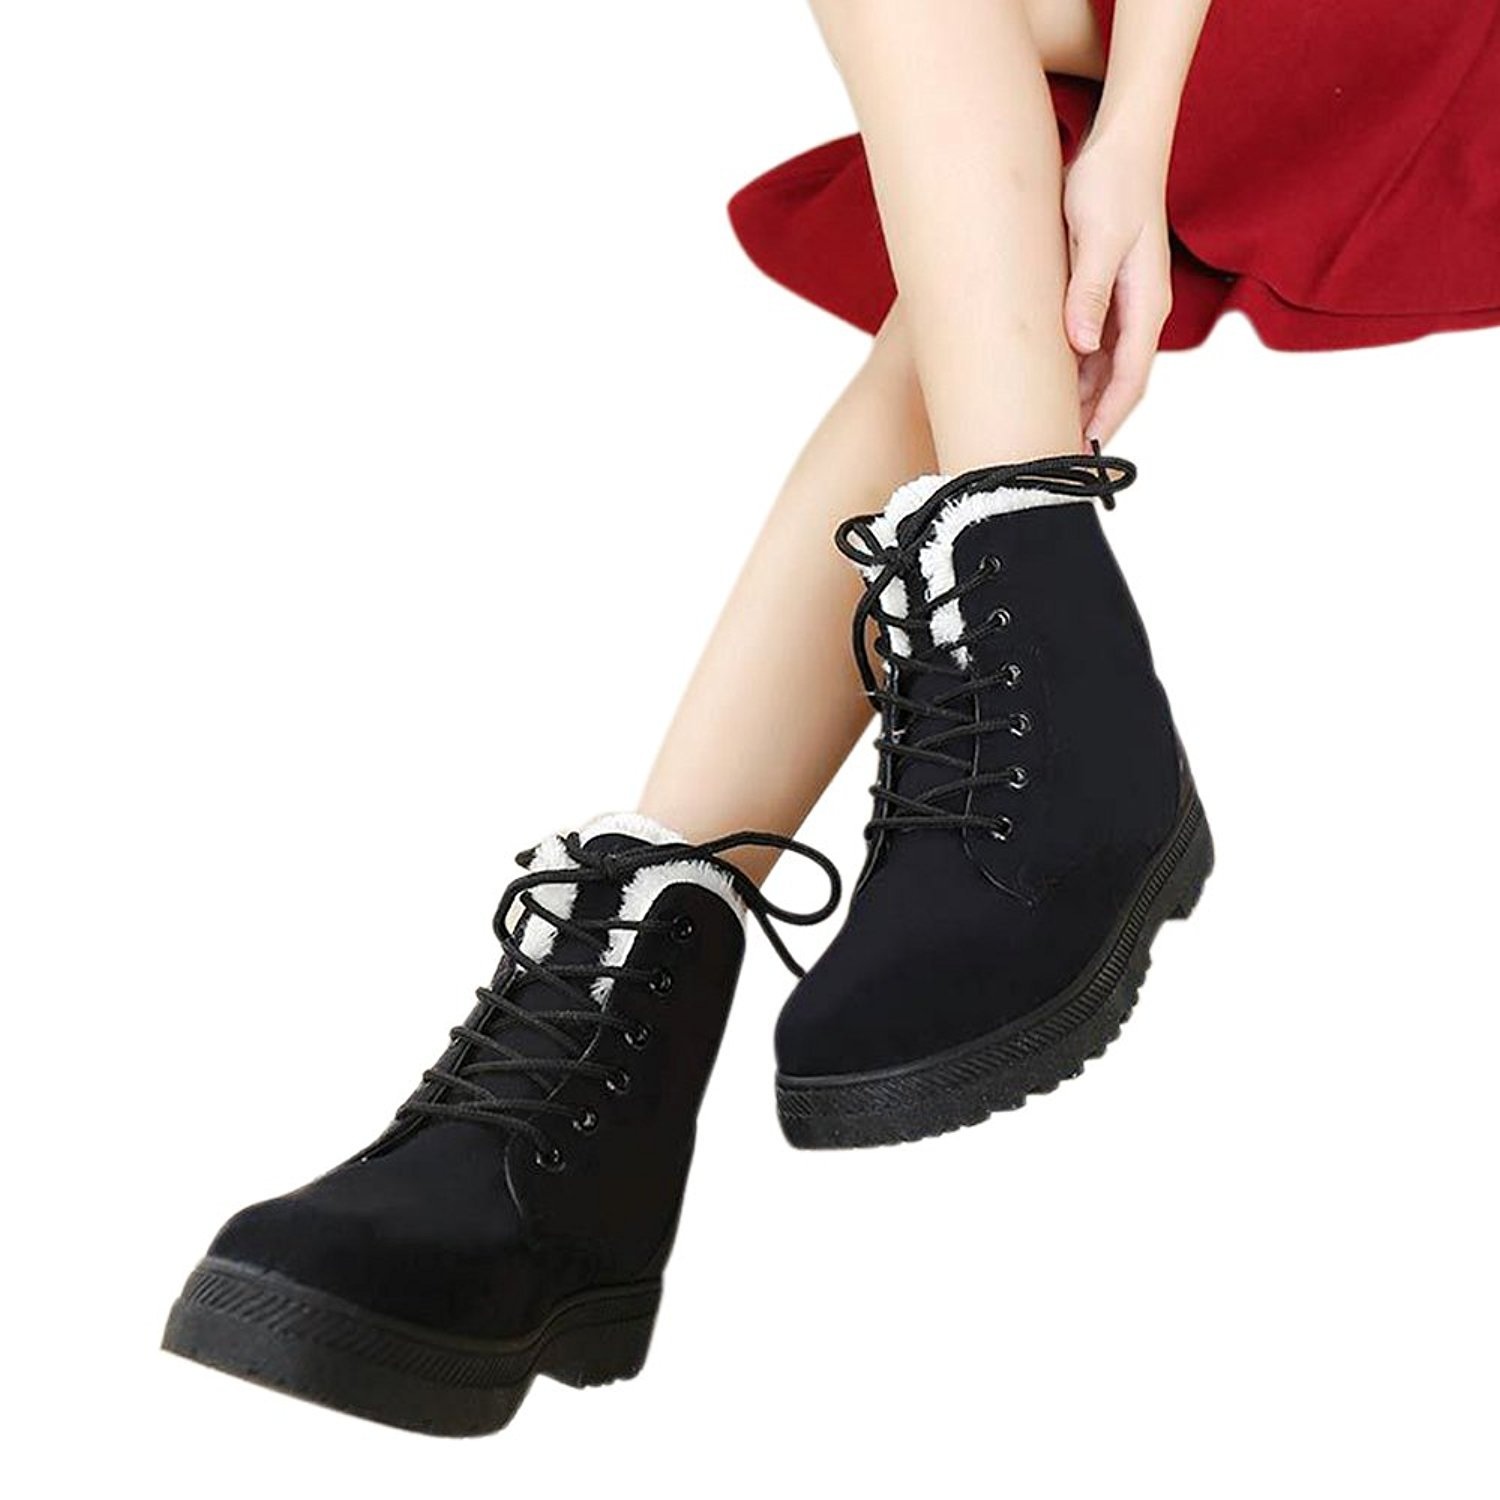 NOT100 Womens Snow Boots for Winter Ankle Boots Combat Walking Shoes Booties Black Vegan Size 9.5 9 1/2 by NOT100 (Image #2)